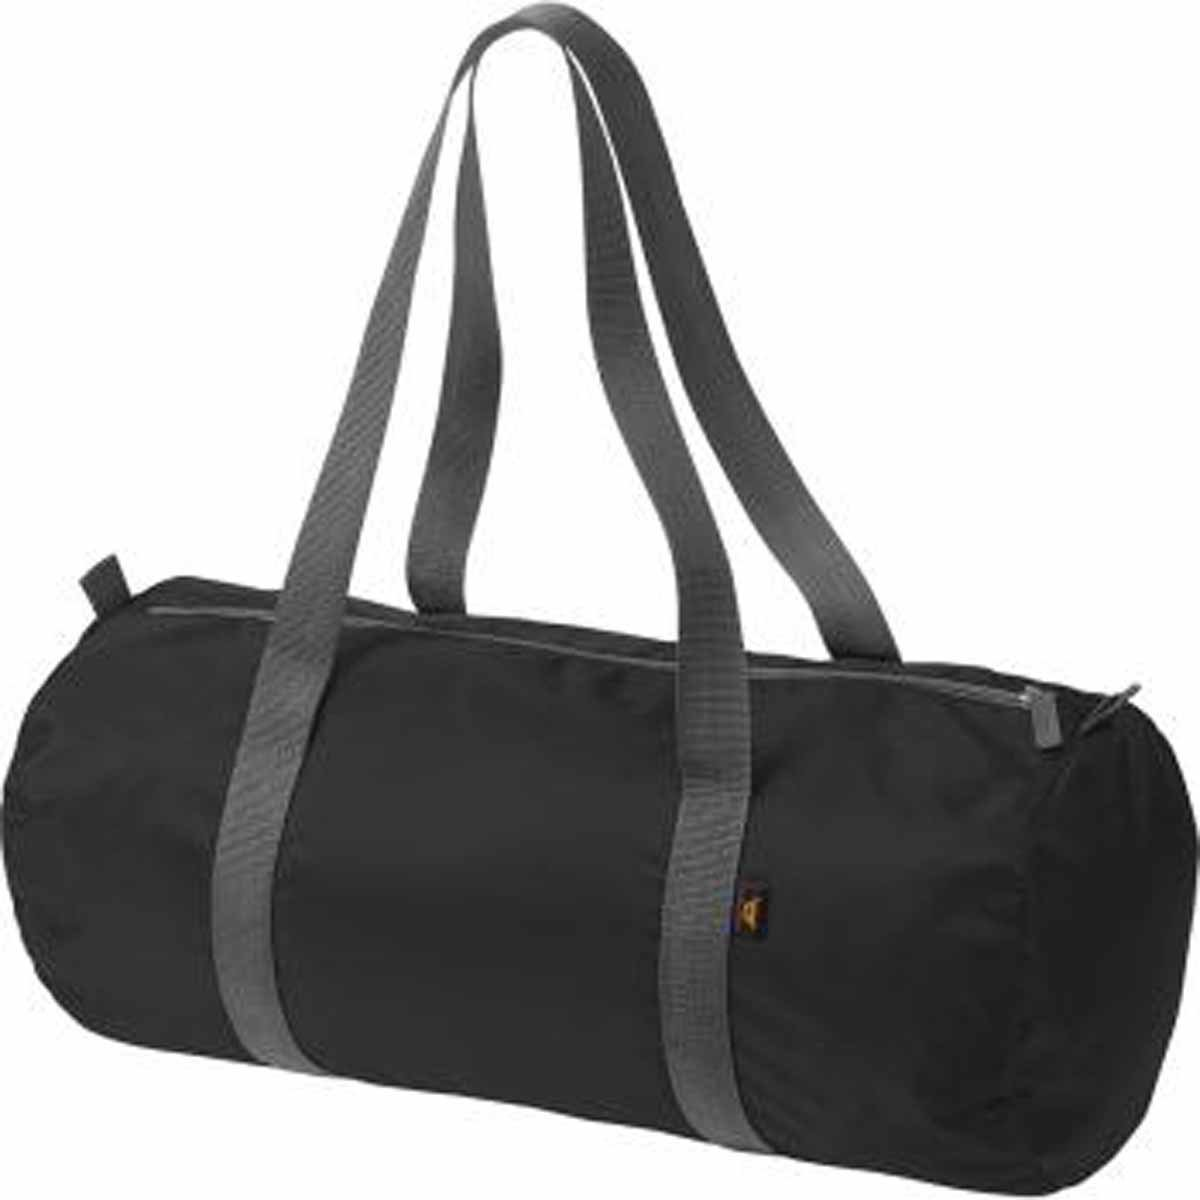 TRAVEL Duffle Bag 1807544 Halfar Mens Sports